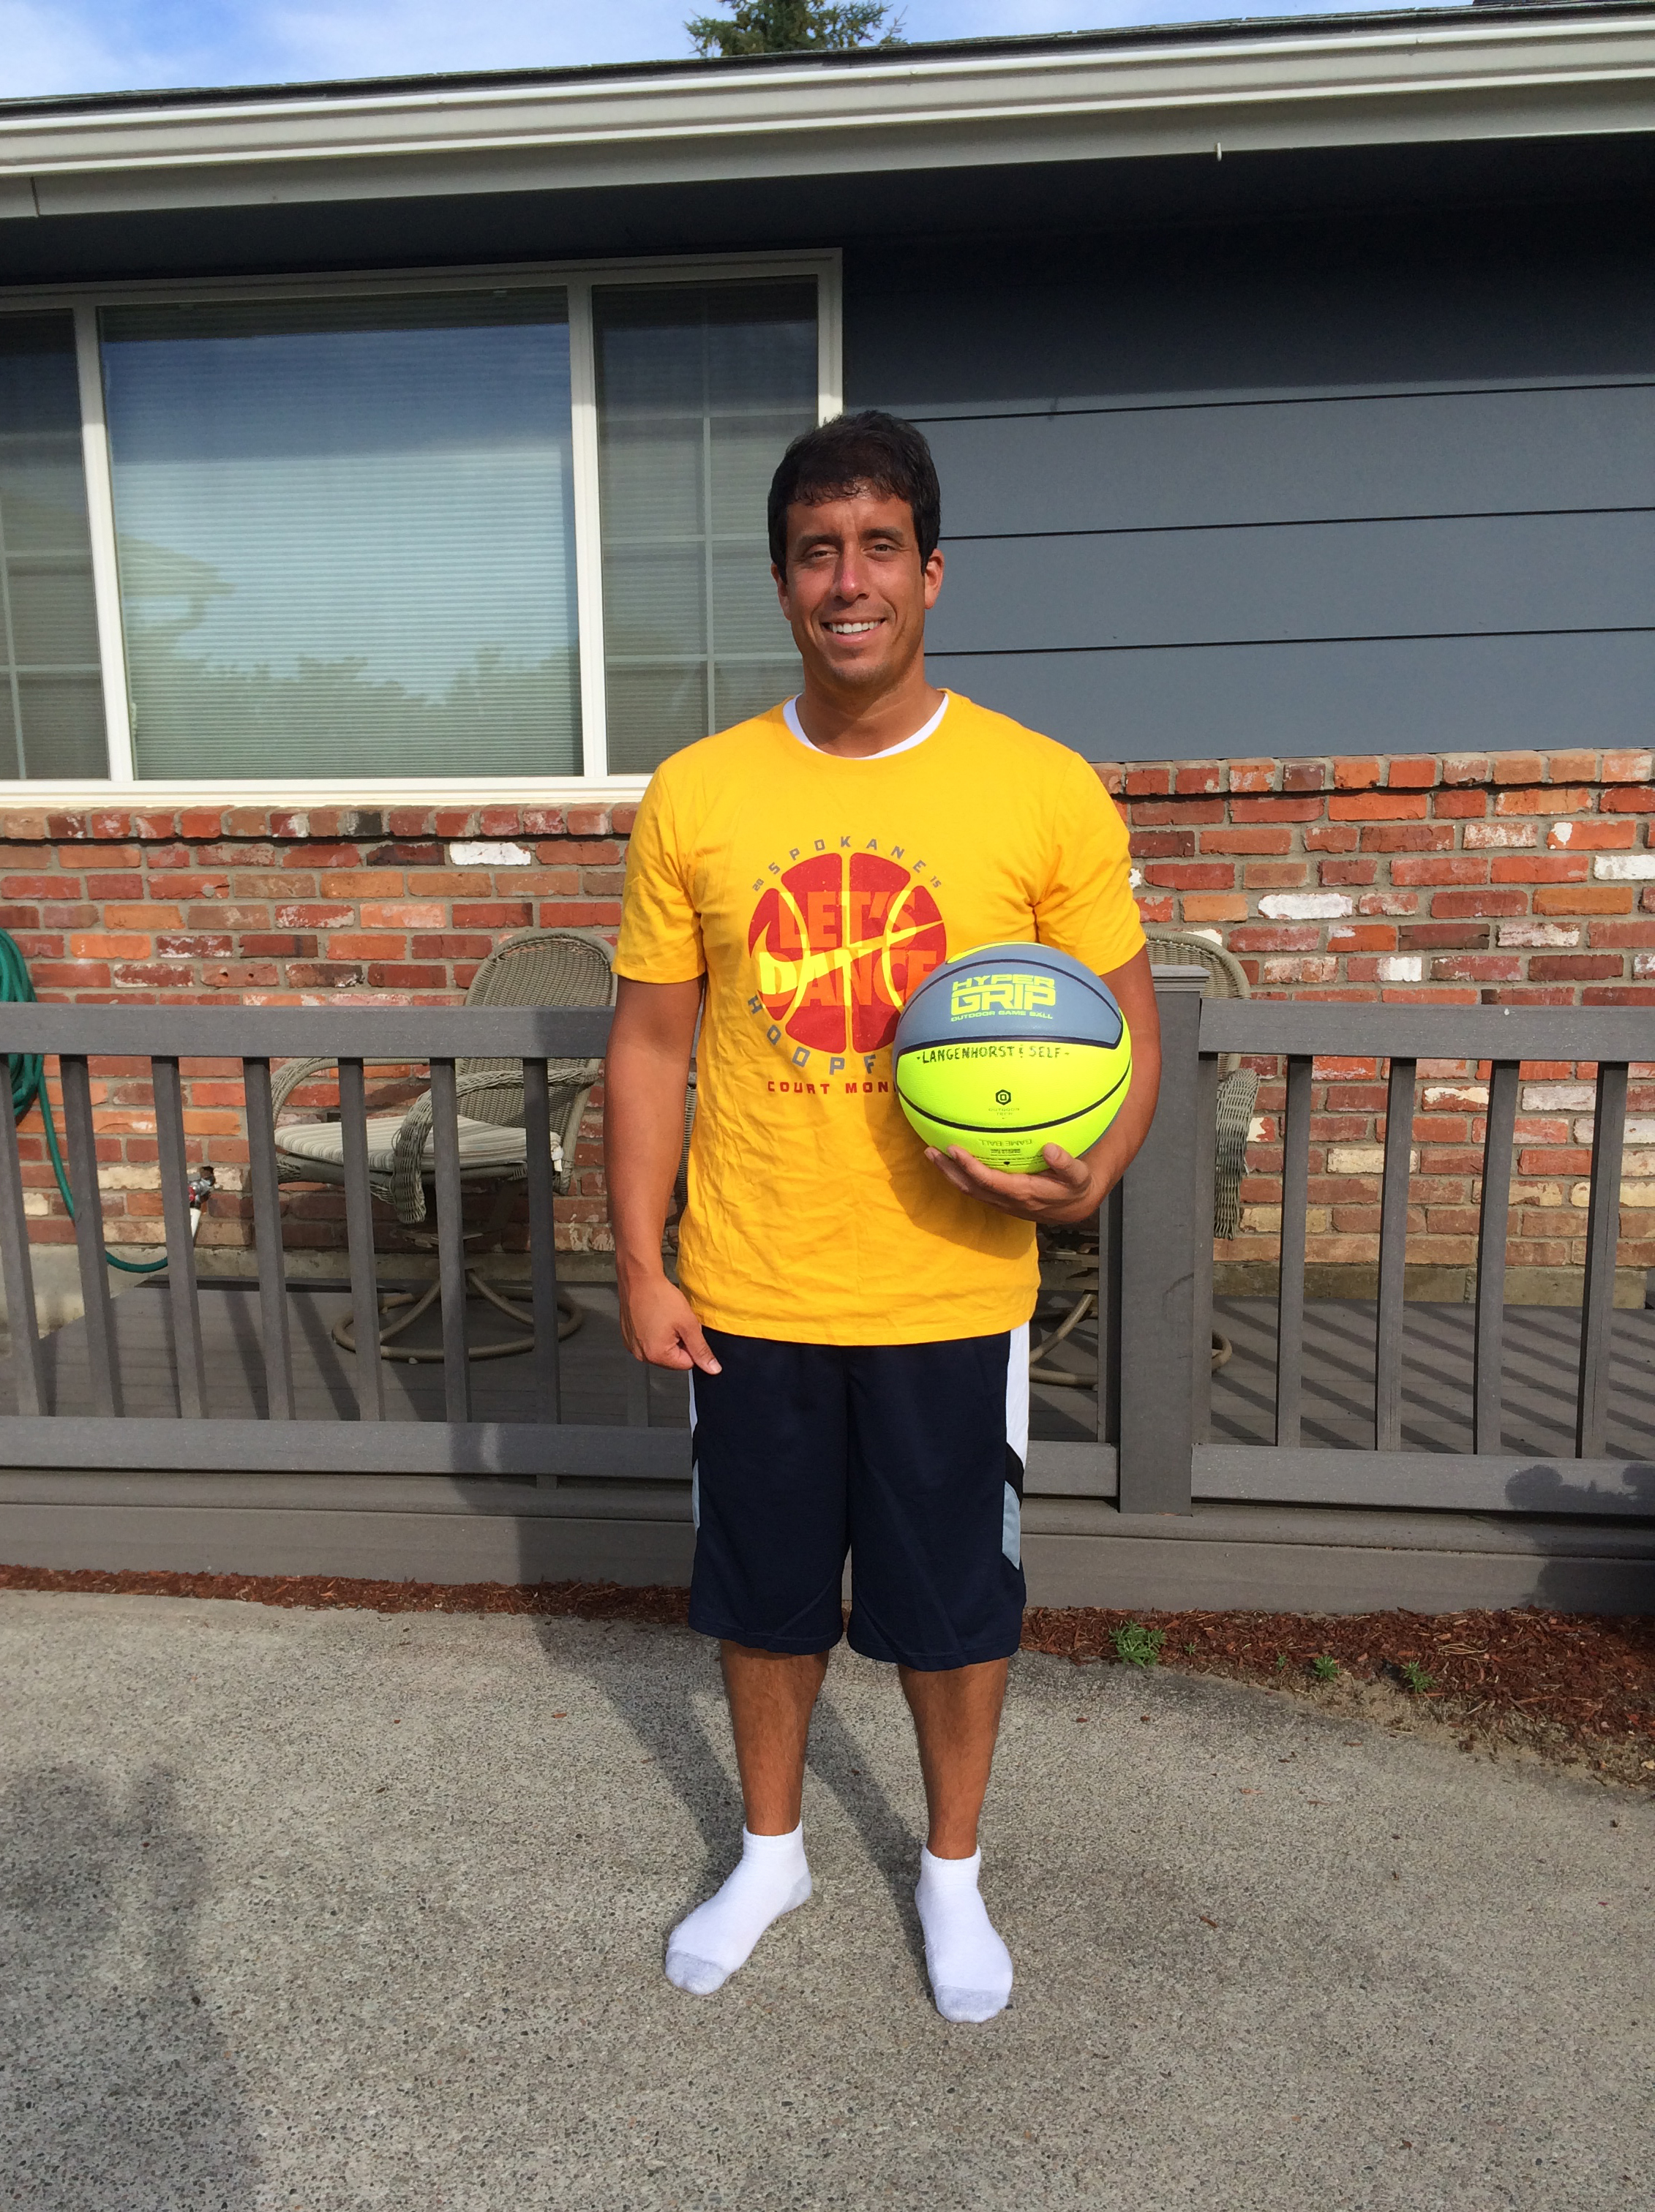 This is me wearing the 2015 Hoopfest t-shirt and shorts while holding the 2015 Hoopfest ball.